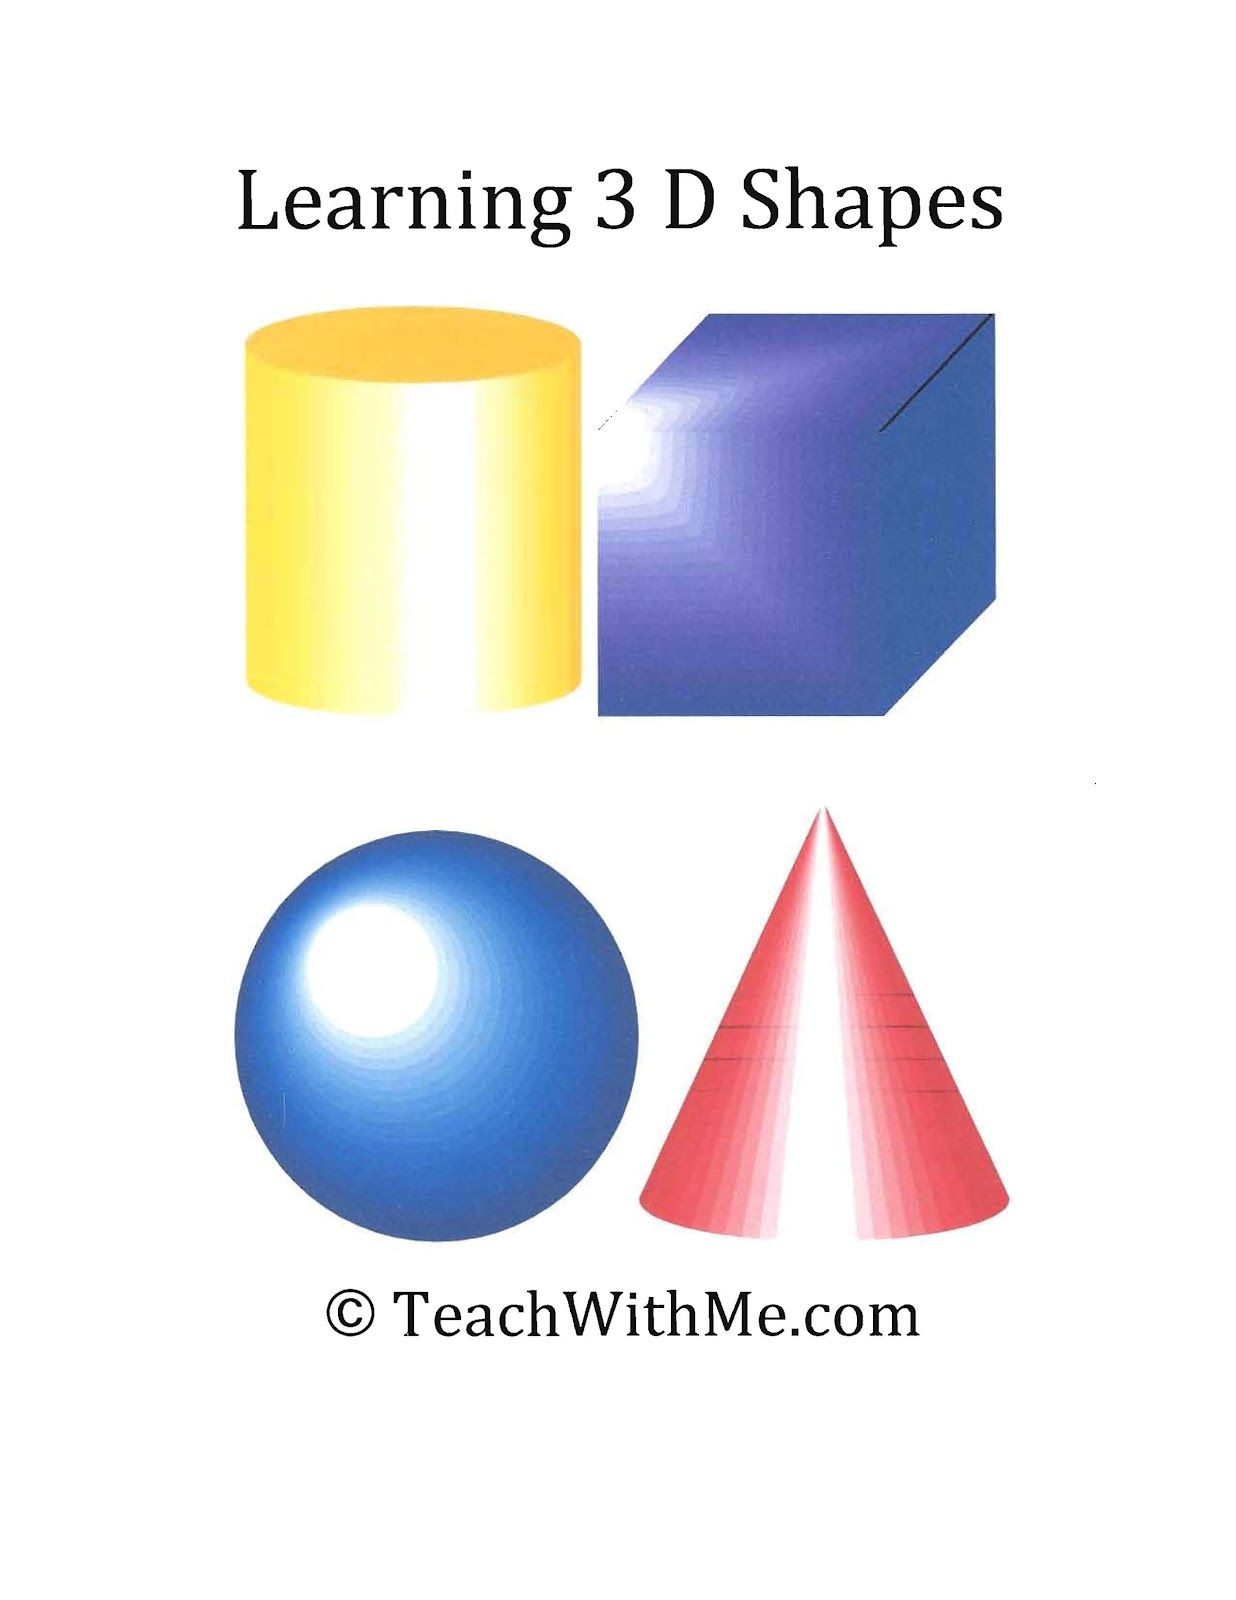 Learning 3 D Shapes